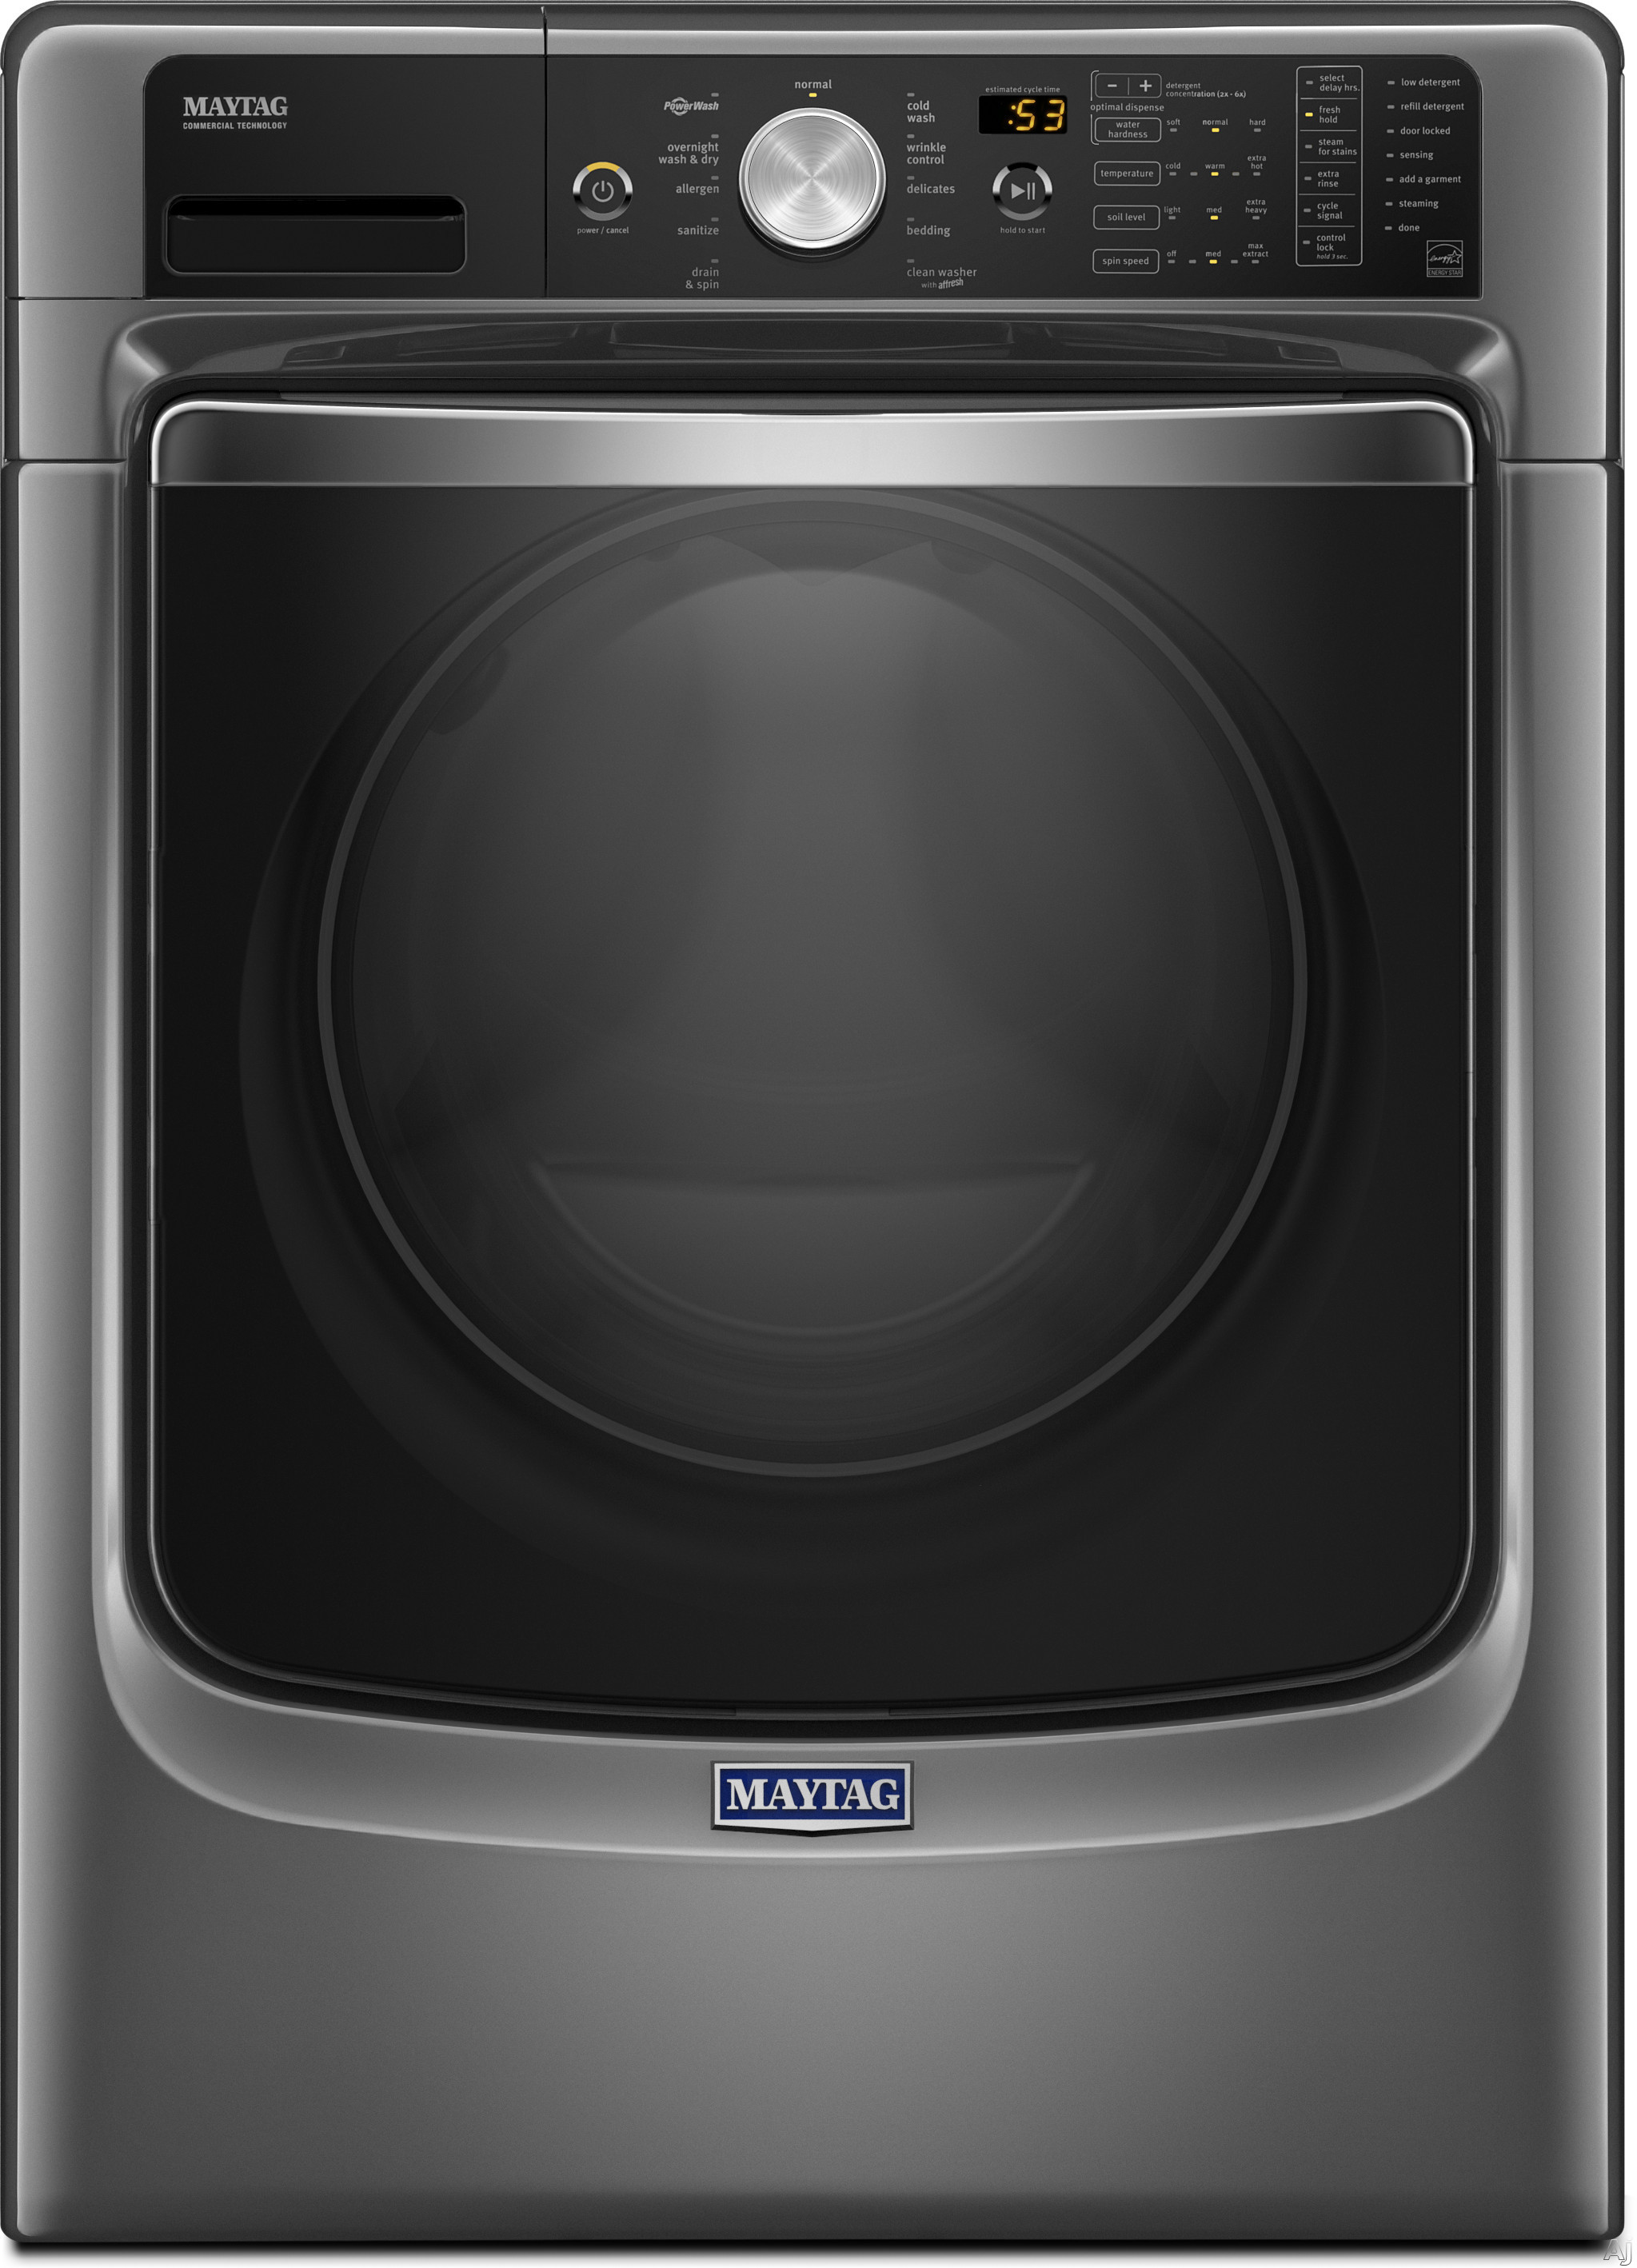 Maytag MHW8200FC 27 Inch 4.6 cu. ft. Front Load Washer with Steam, PowerWash® System, Fresh Hold® Option, Optimal Dose Dispenser, 11 Wash Cycles, 1,200 RPM, Overnight Wash & Dry Cycle and ENERGY